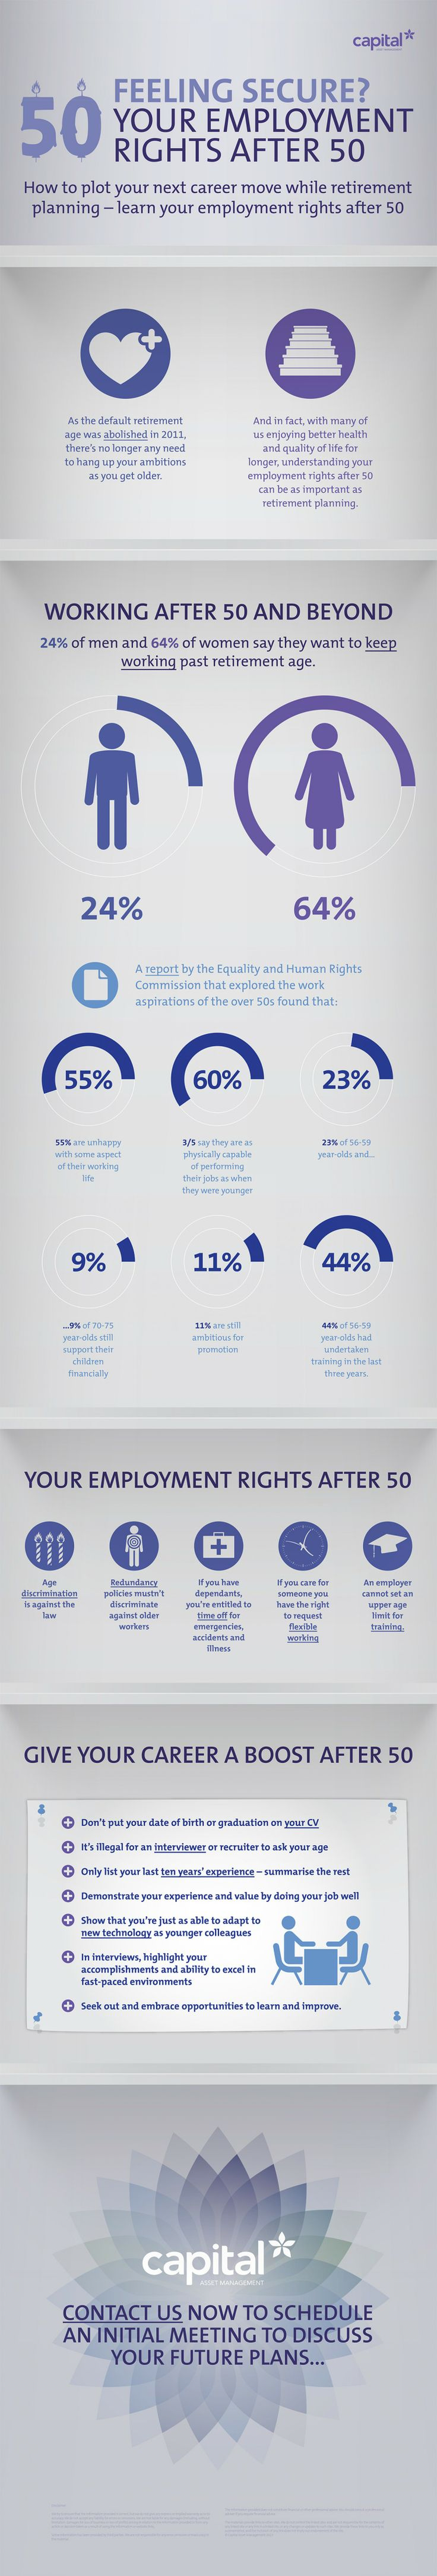 Feeling Secure, your employment rights After 50